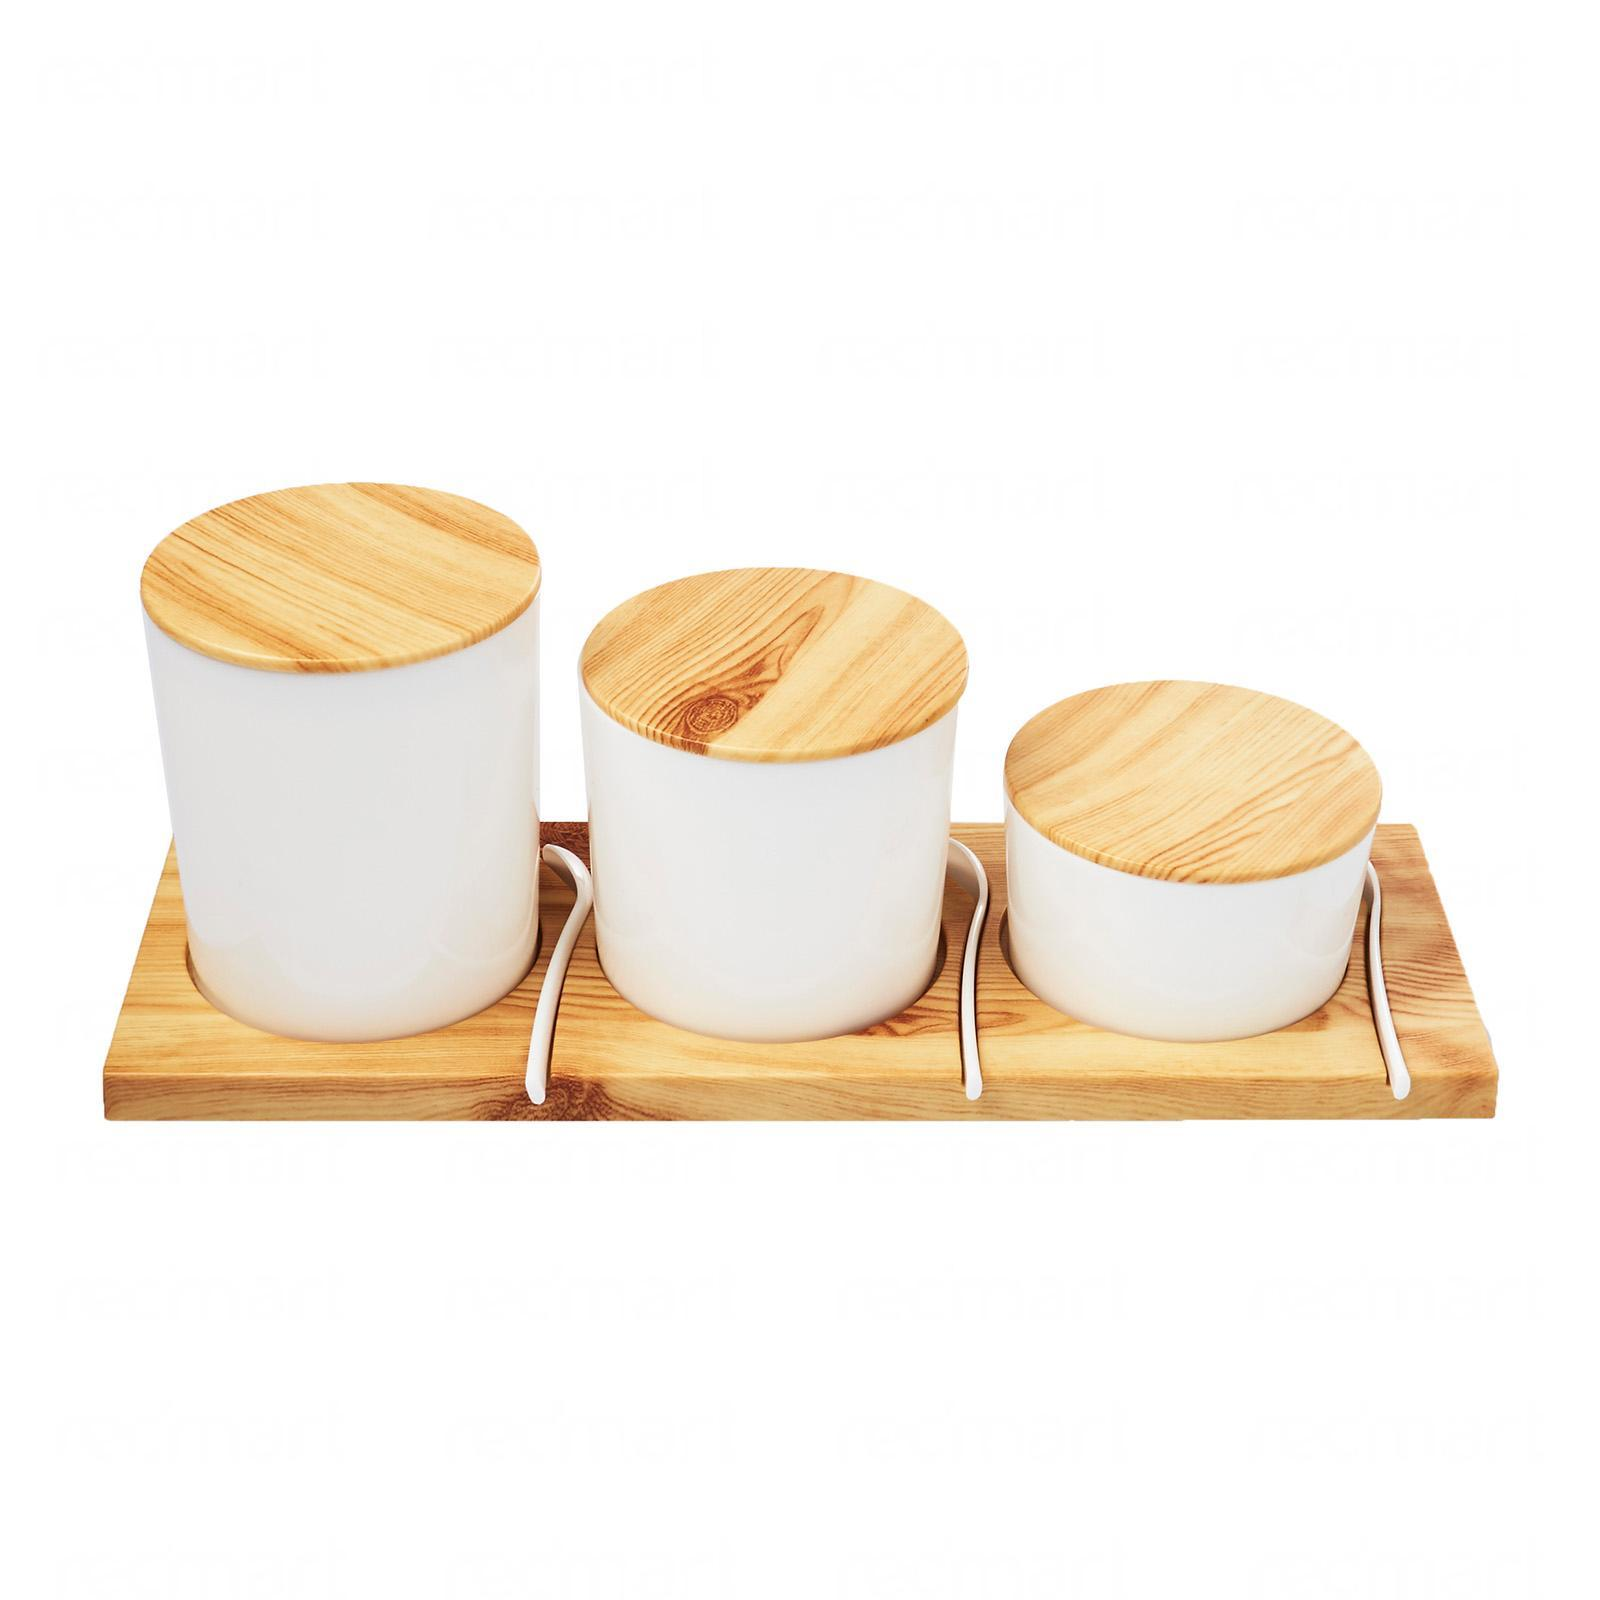 Mason Market Condiment Containers - Set of 3